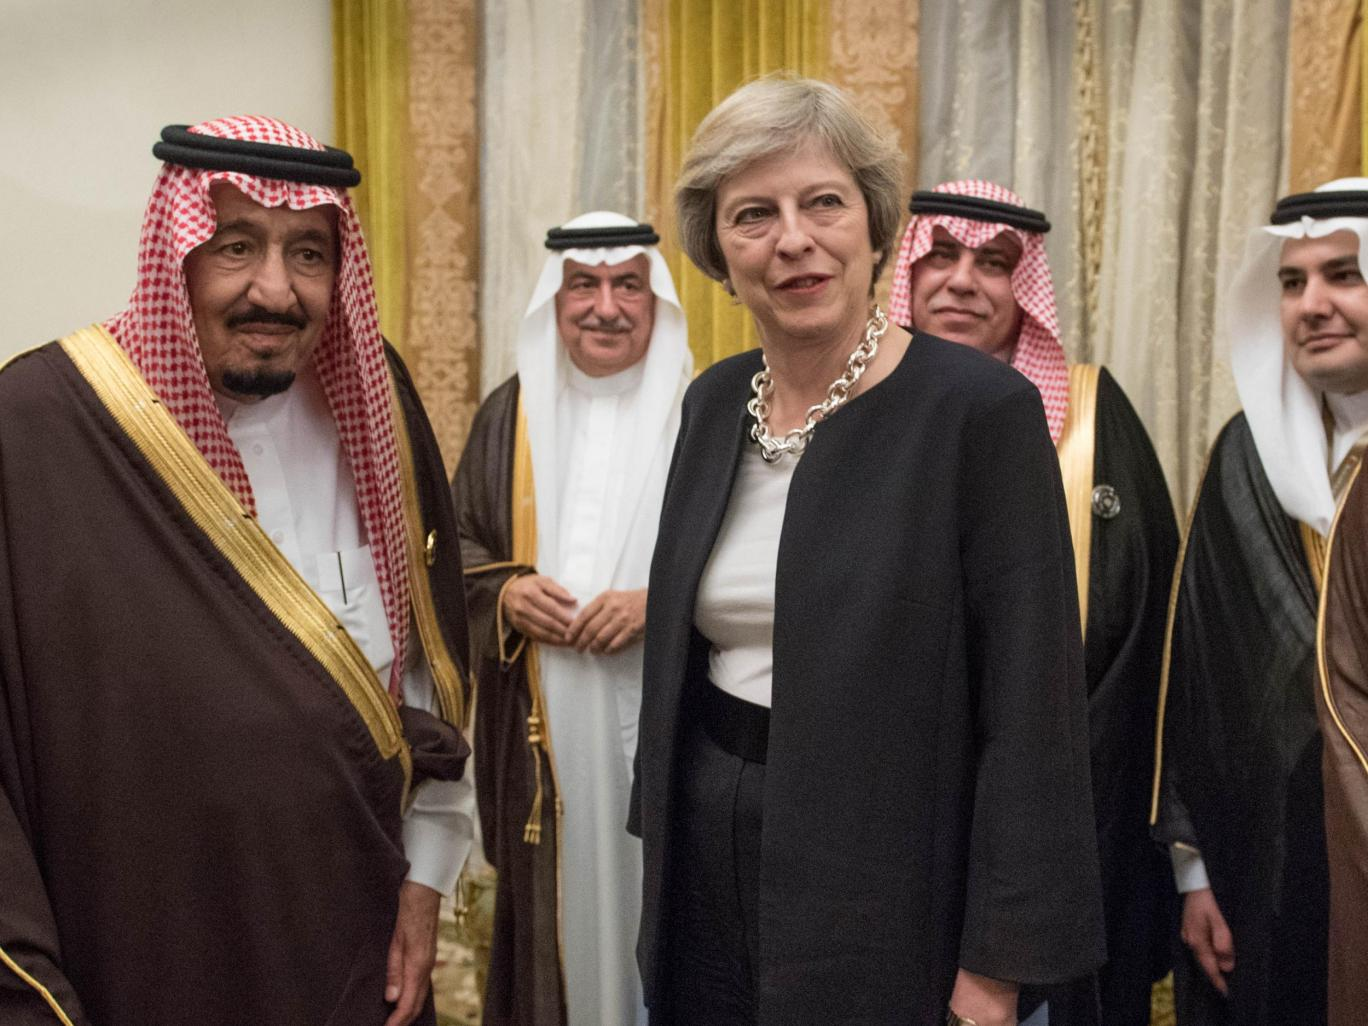 UK not breaking law by selling arms to Saudi Arabia